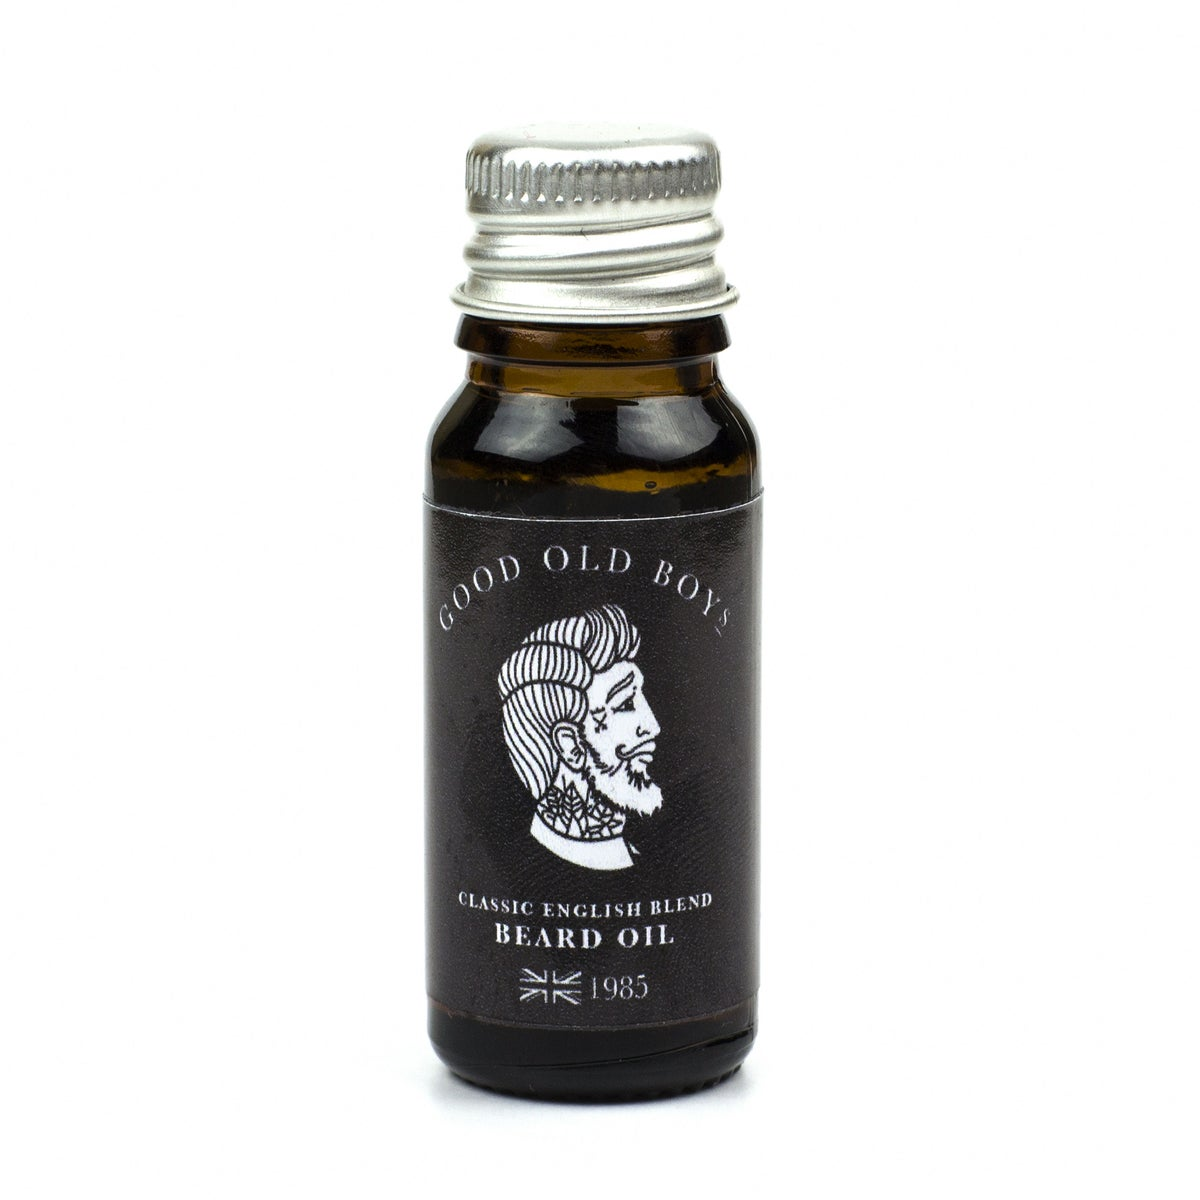 classic english blend beard oil good old boys. Black Bedroom Furniture Sets. Home Design Ideas